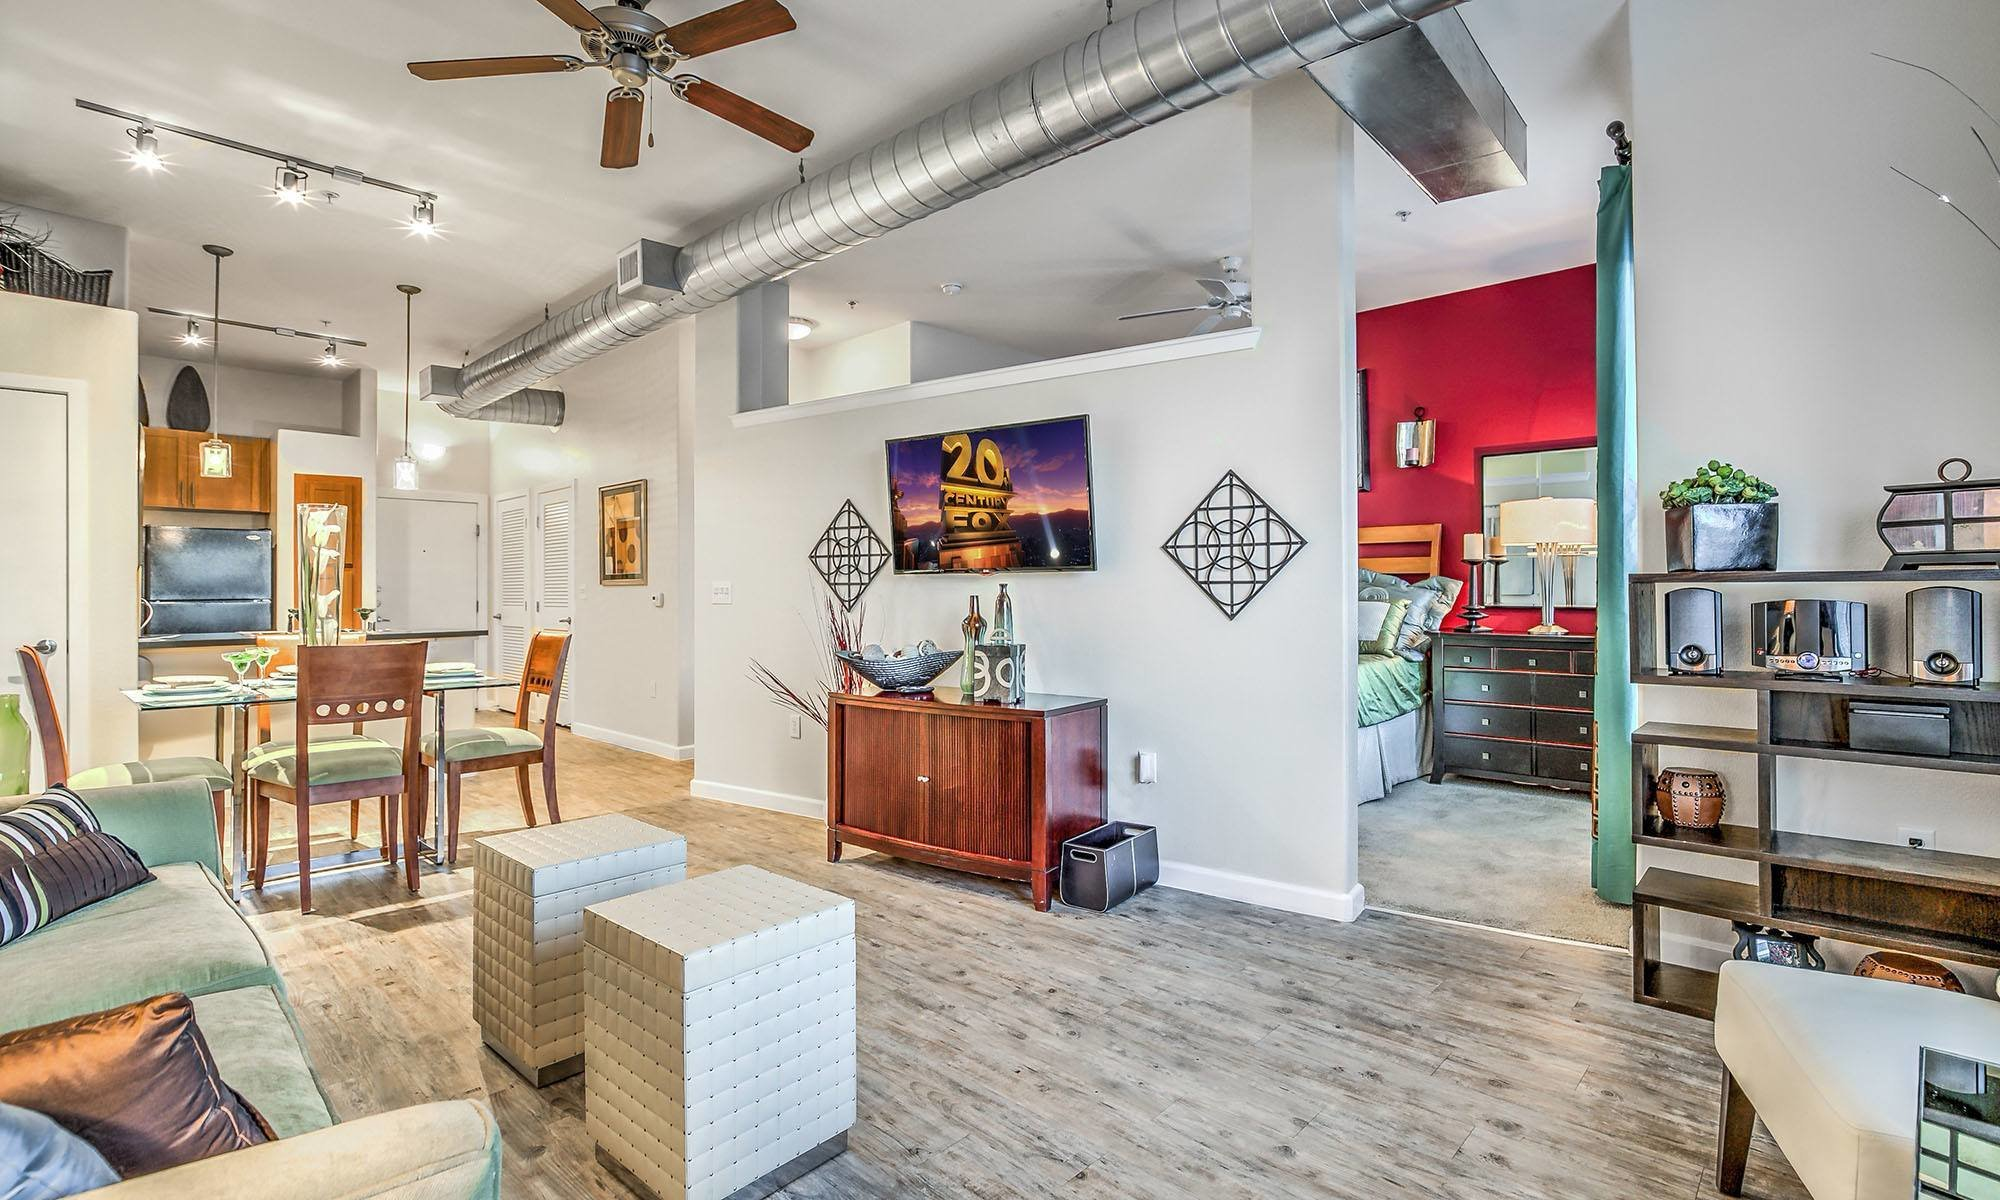 Best Lofts At 7100 Nw Las Vegas Nv Apartments For Rent With Pictures